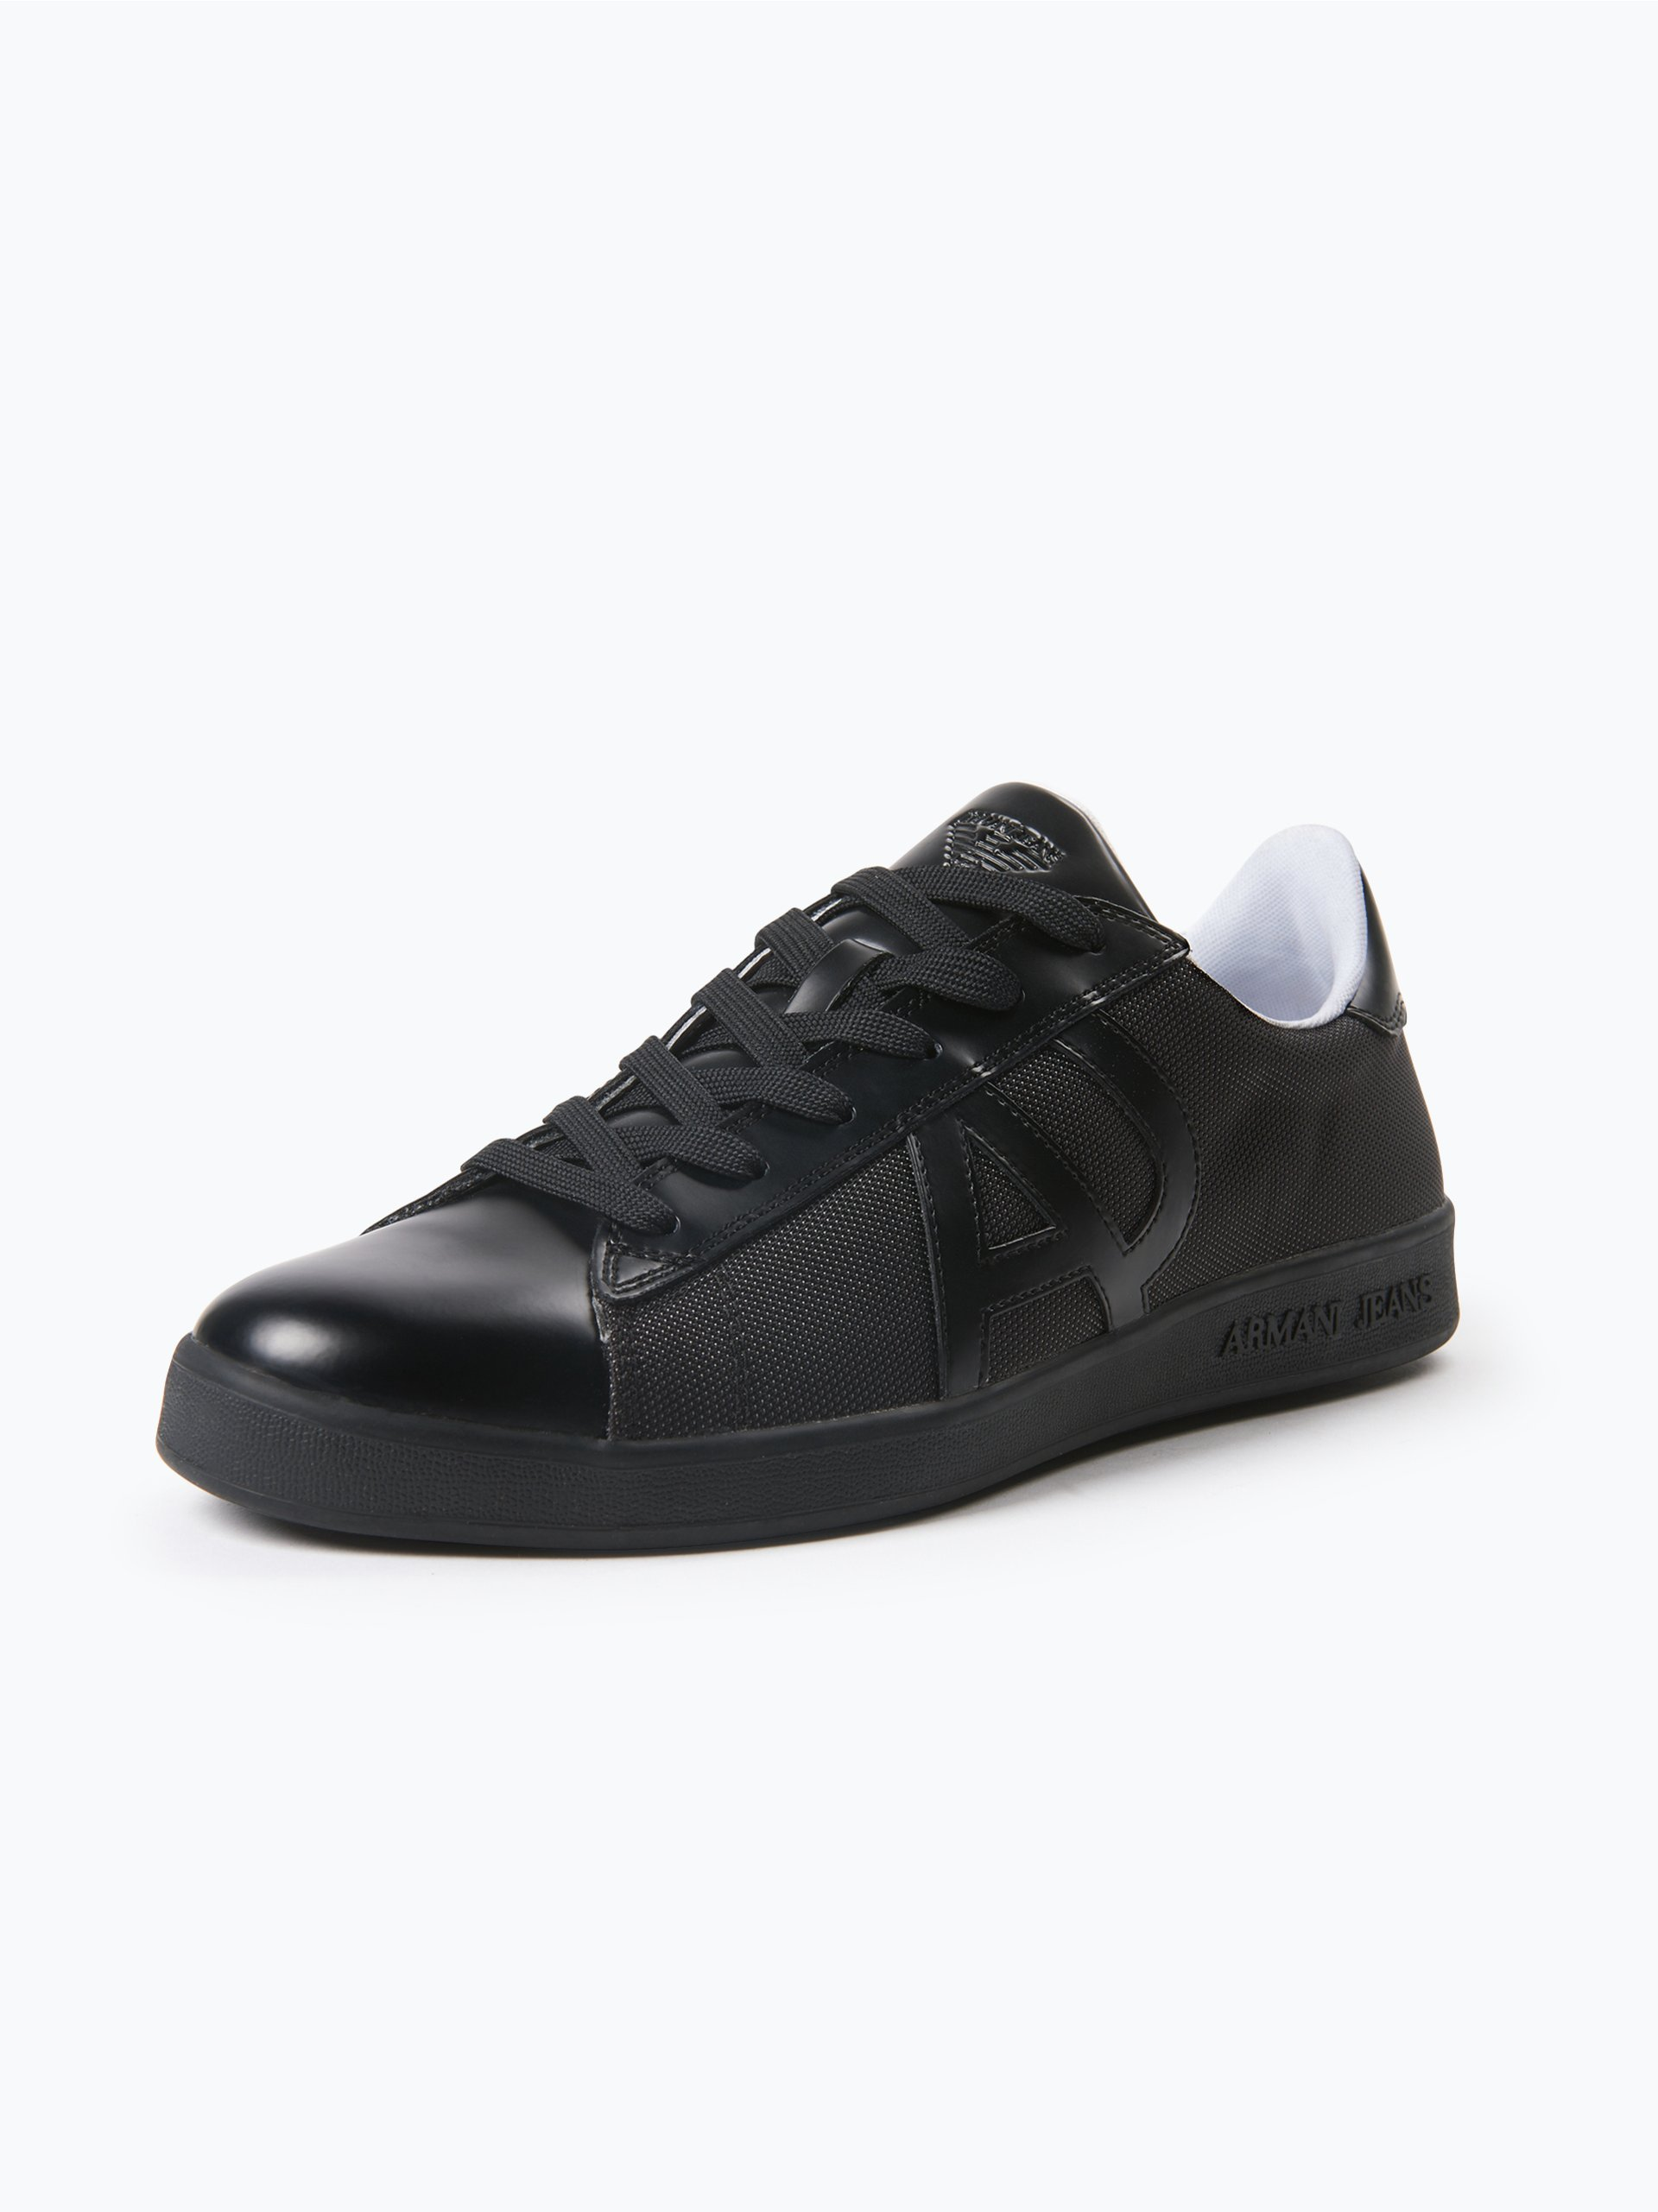 armani jeans herren sneaker mit leder besatz schwarz uni online kaufen peek und cloppenburg de. Black Bedroom Furniture Sets. Home Design Ideas